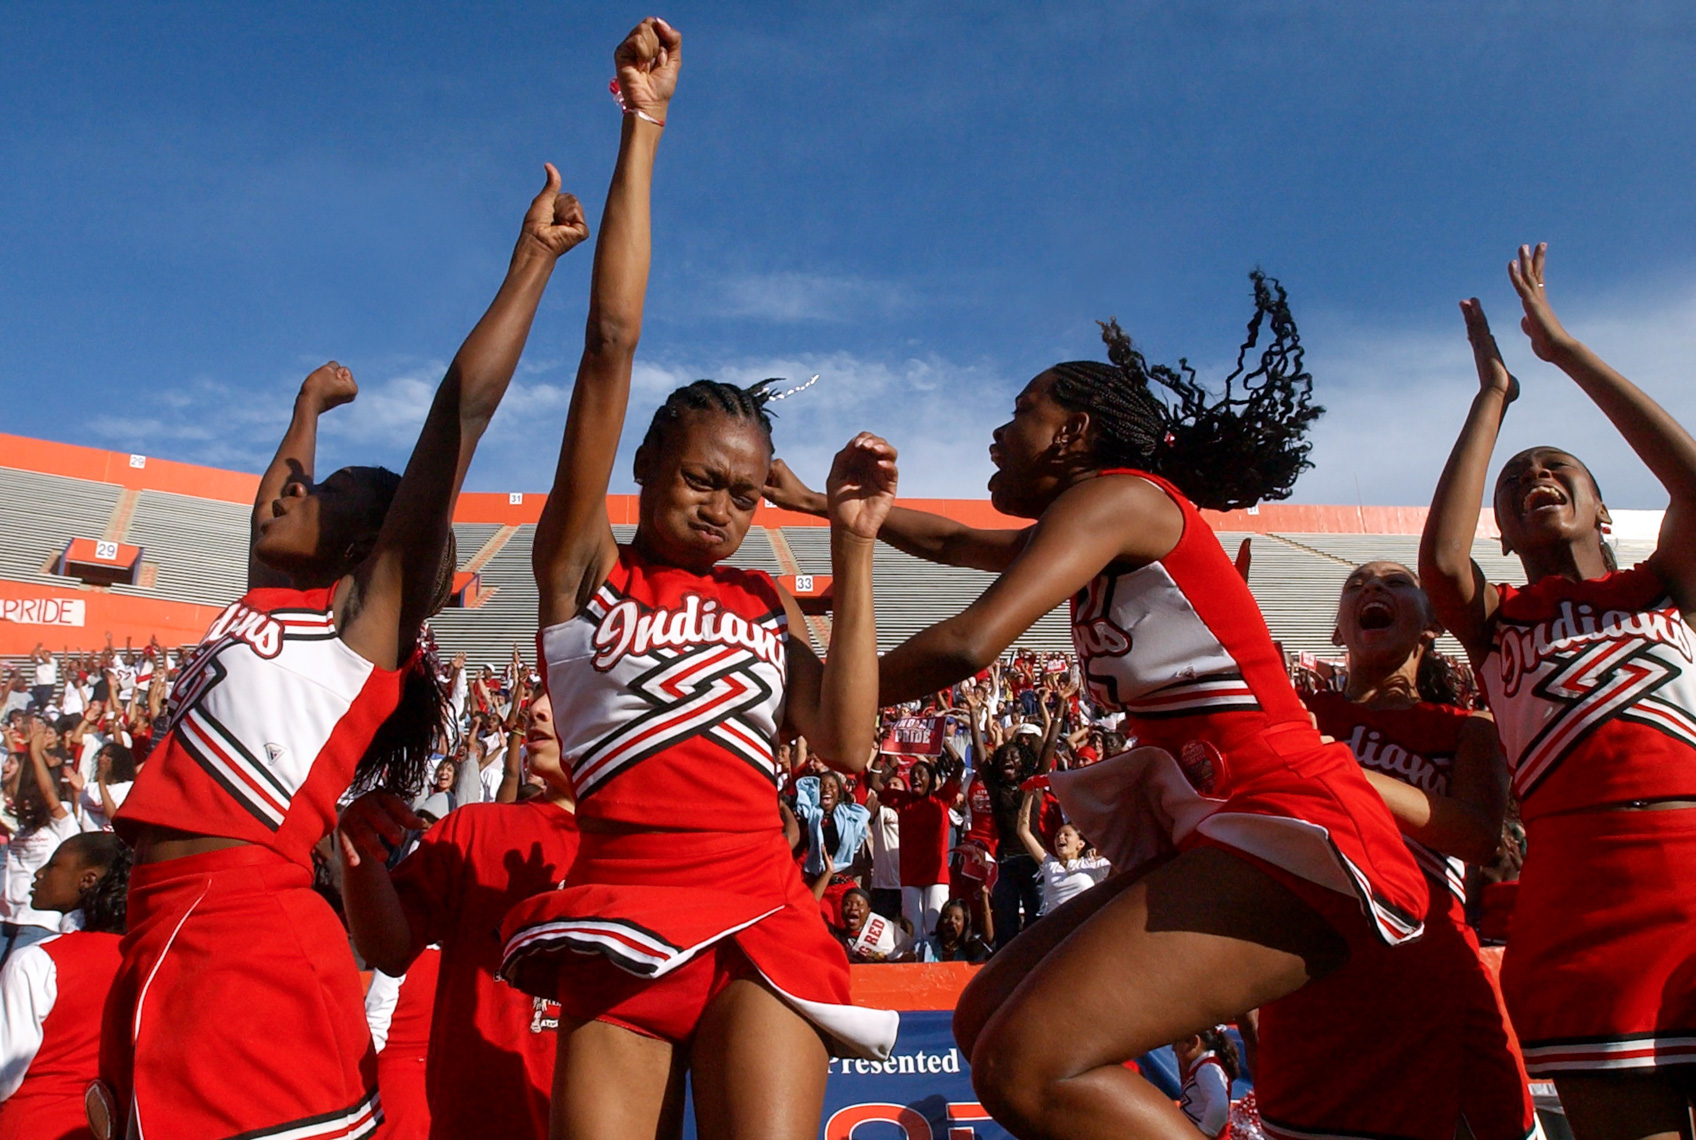 01-Youth-Sports-Cheerleaders-Celebrate